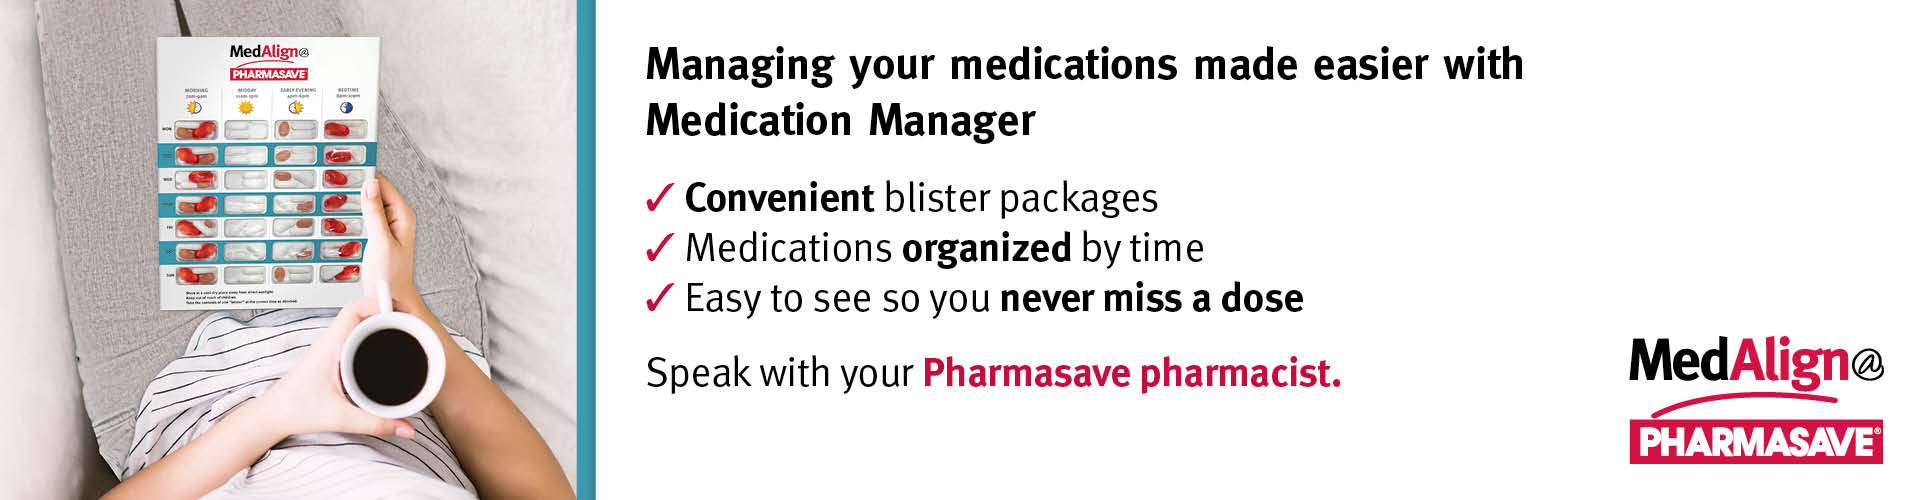 Managing your medicagtions can be easy